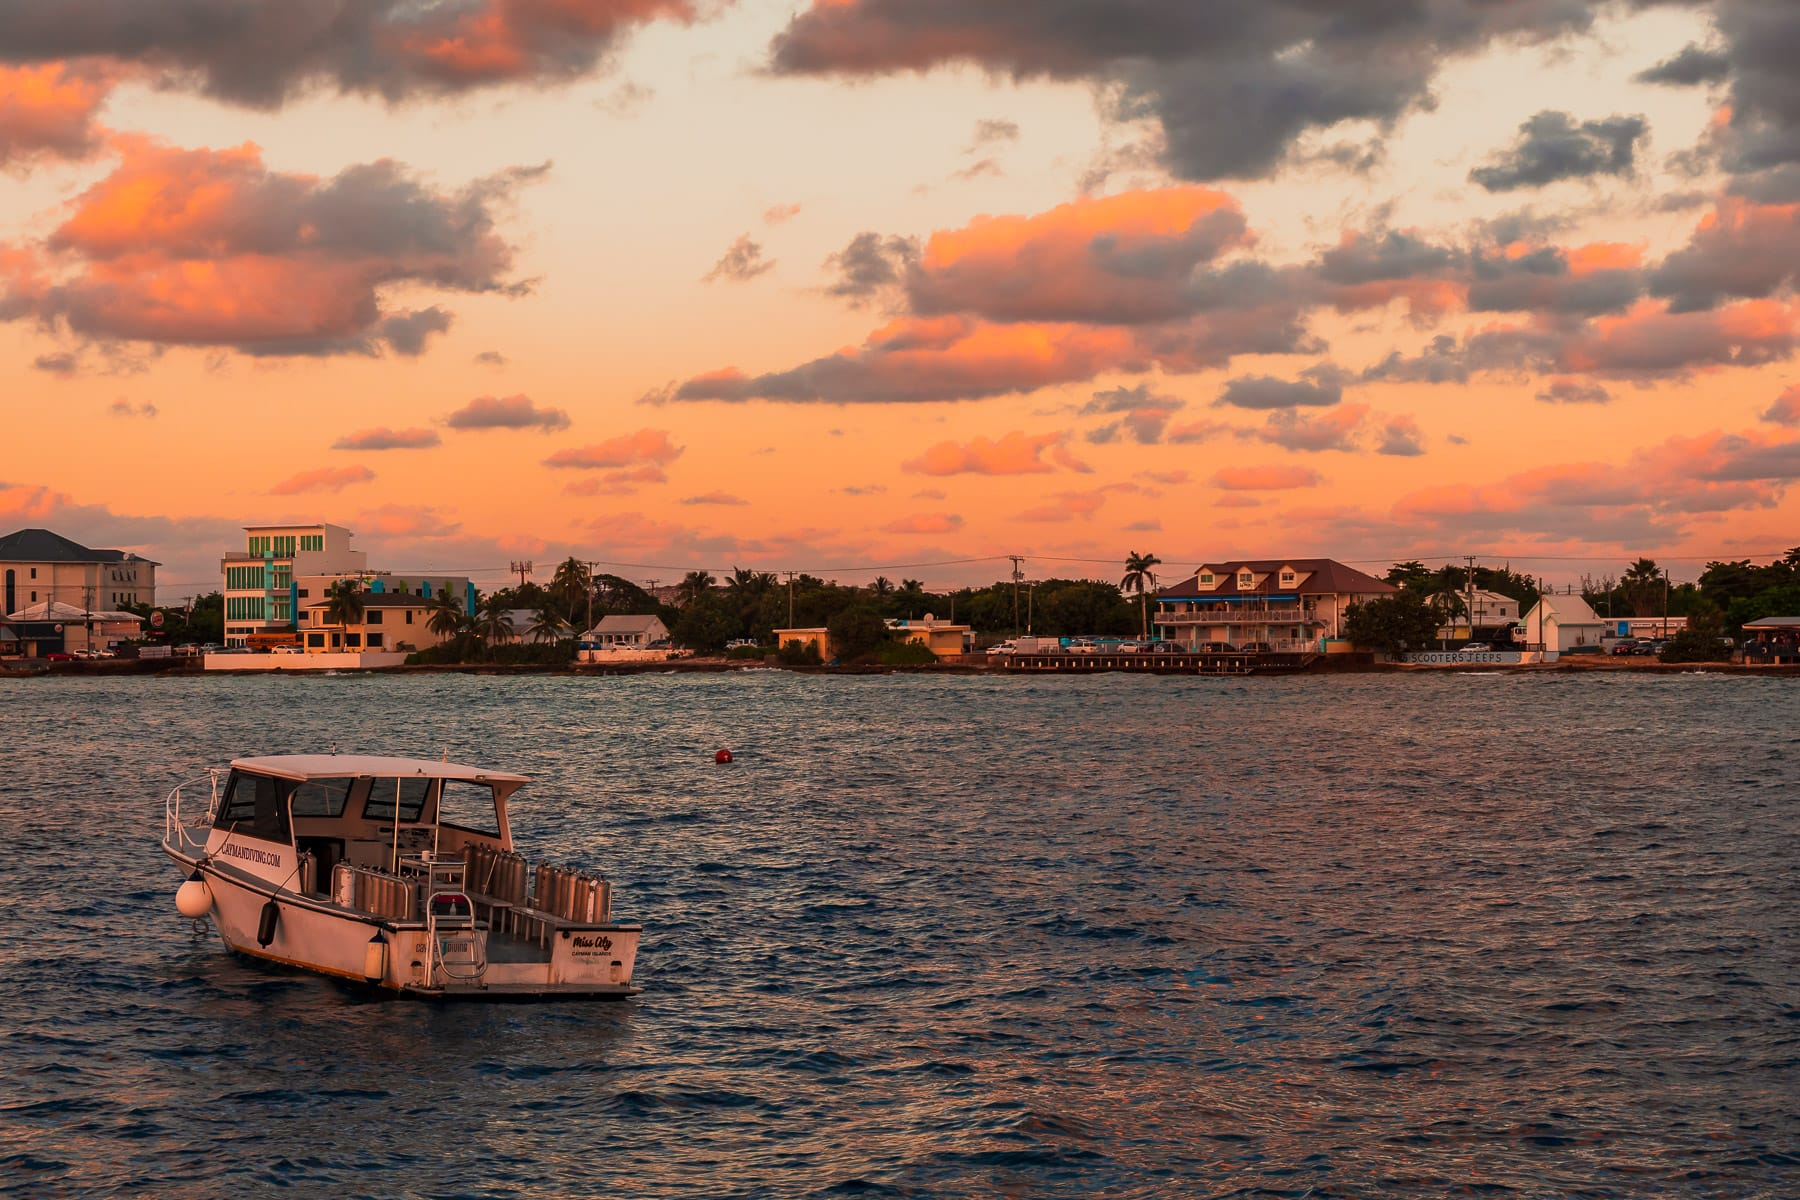 The sun sets on a dive boat off the coast of George Town, Grand Cayman.